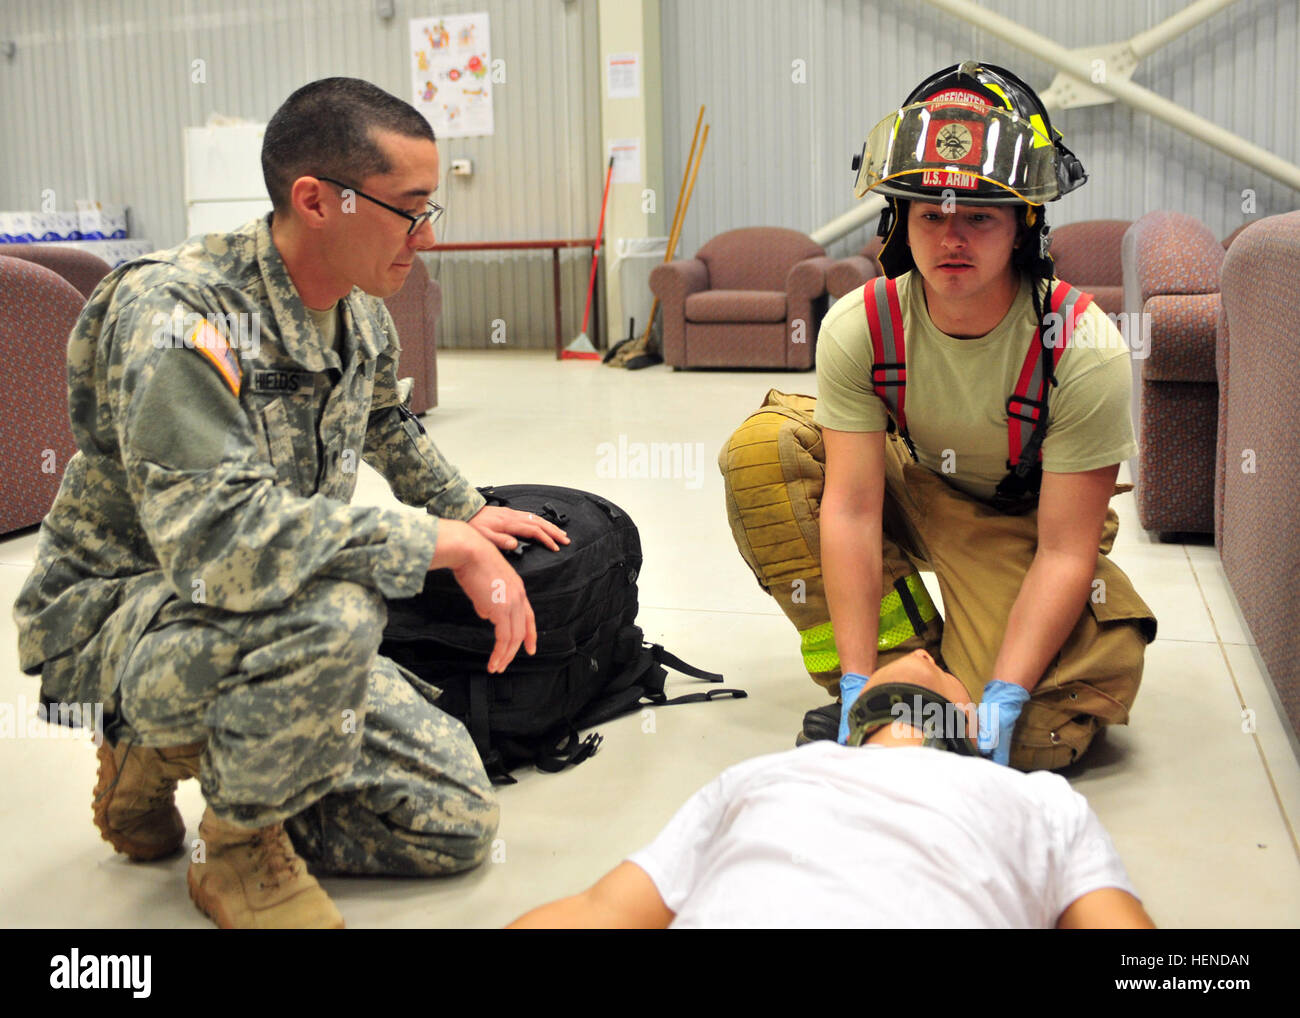 Spc. Thomas P. Shields, left, a medic assigned to the 21st Theater Sustainment Command's 557th Medical Company, - Stock Image